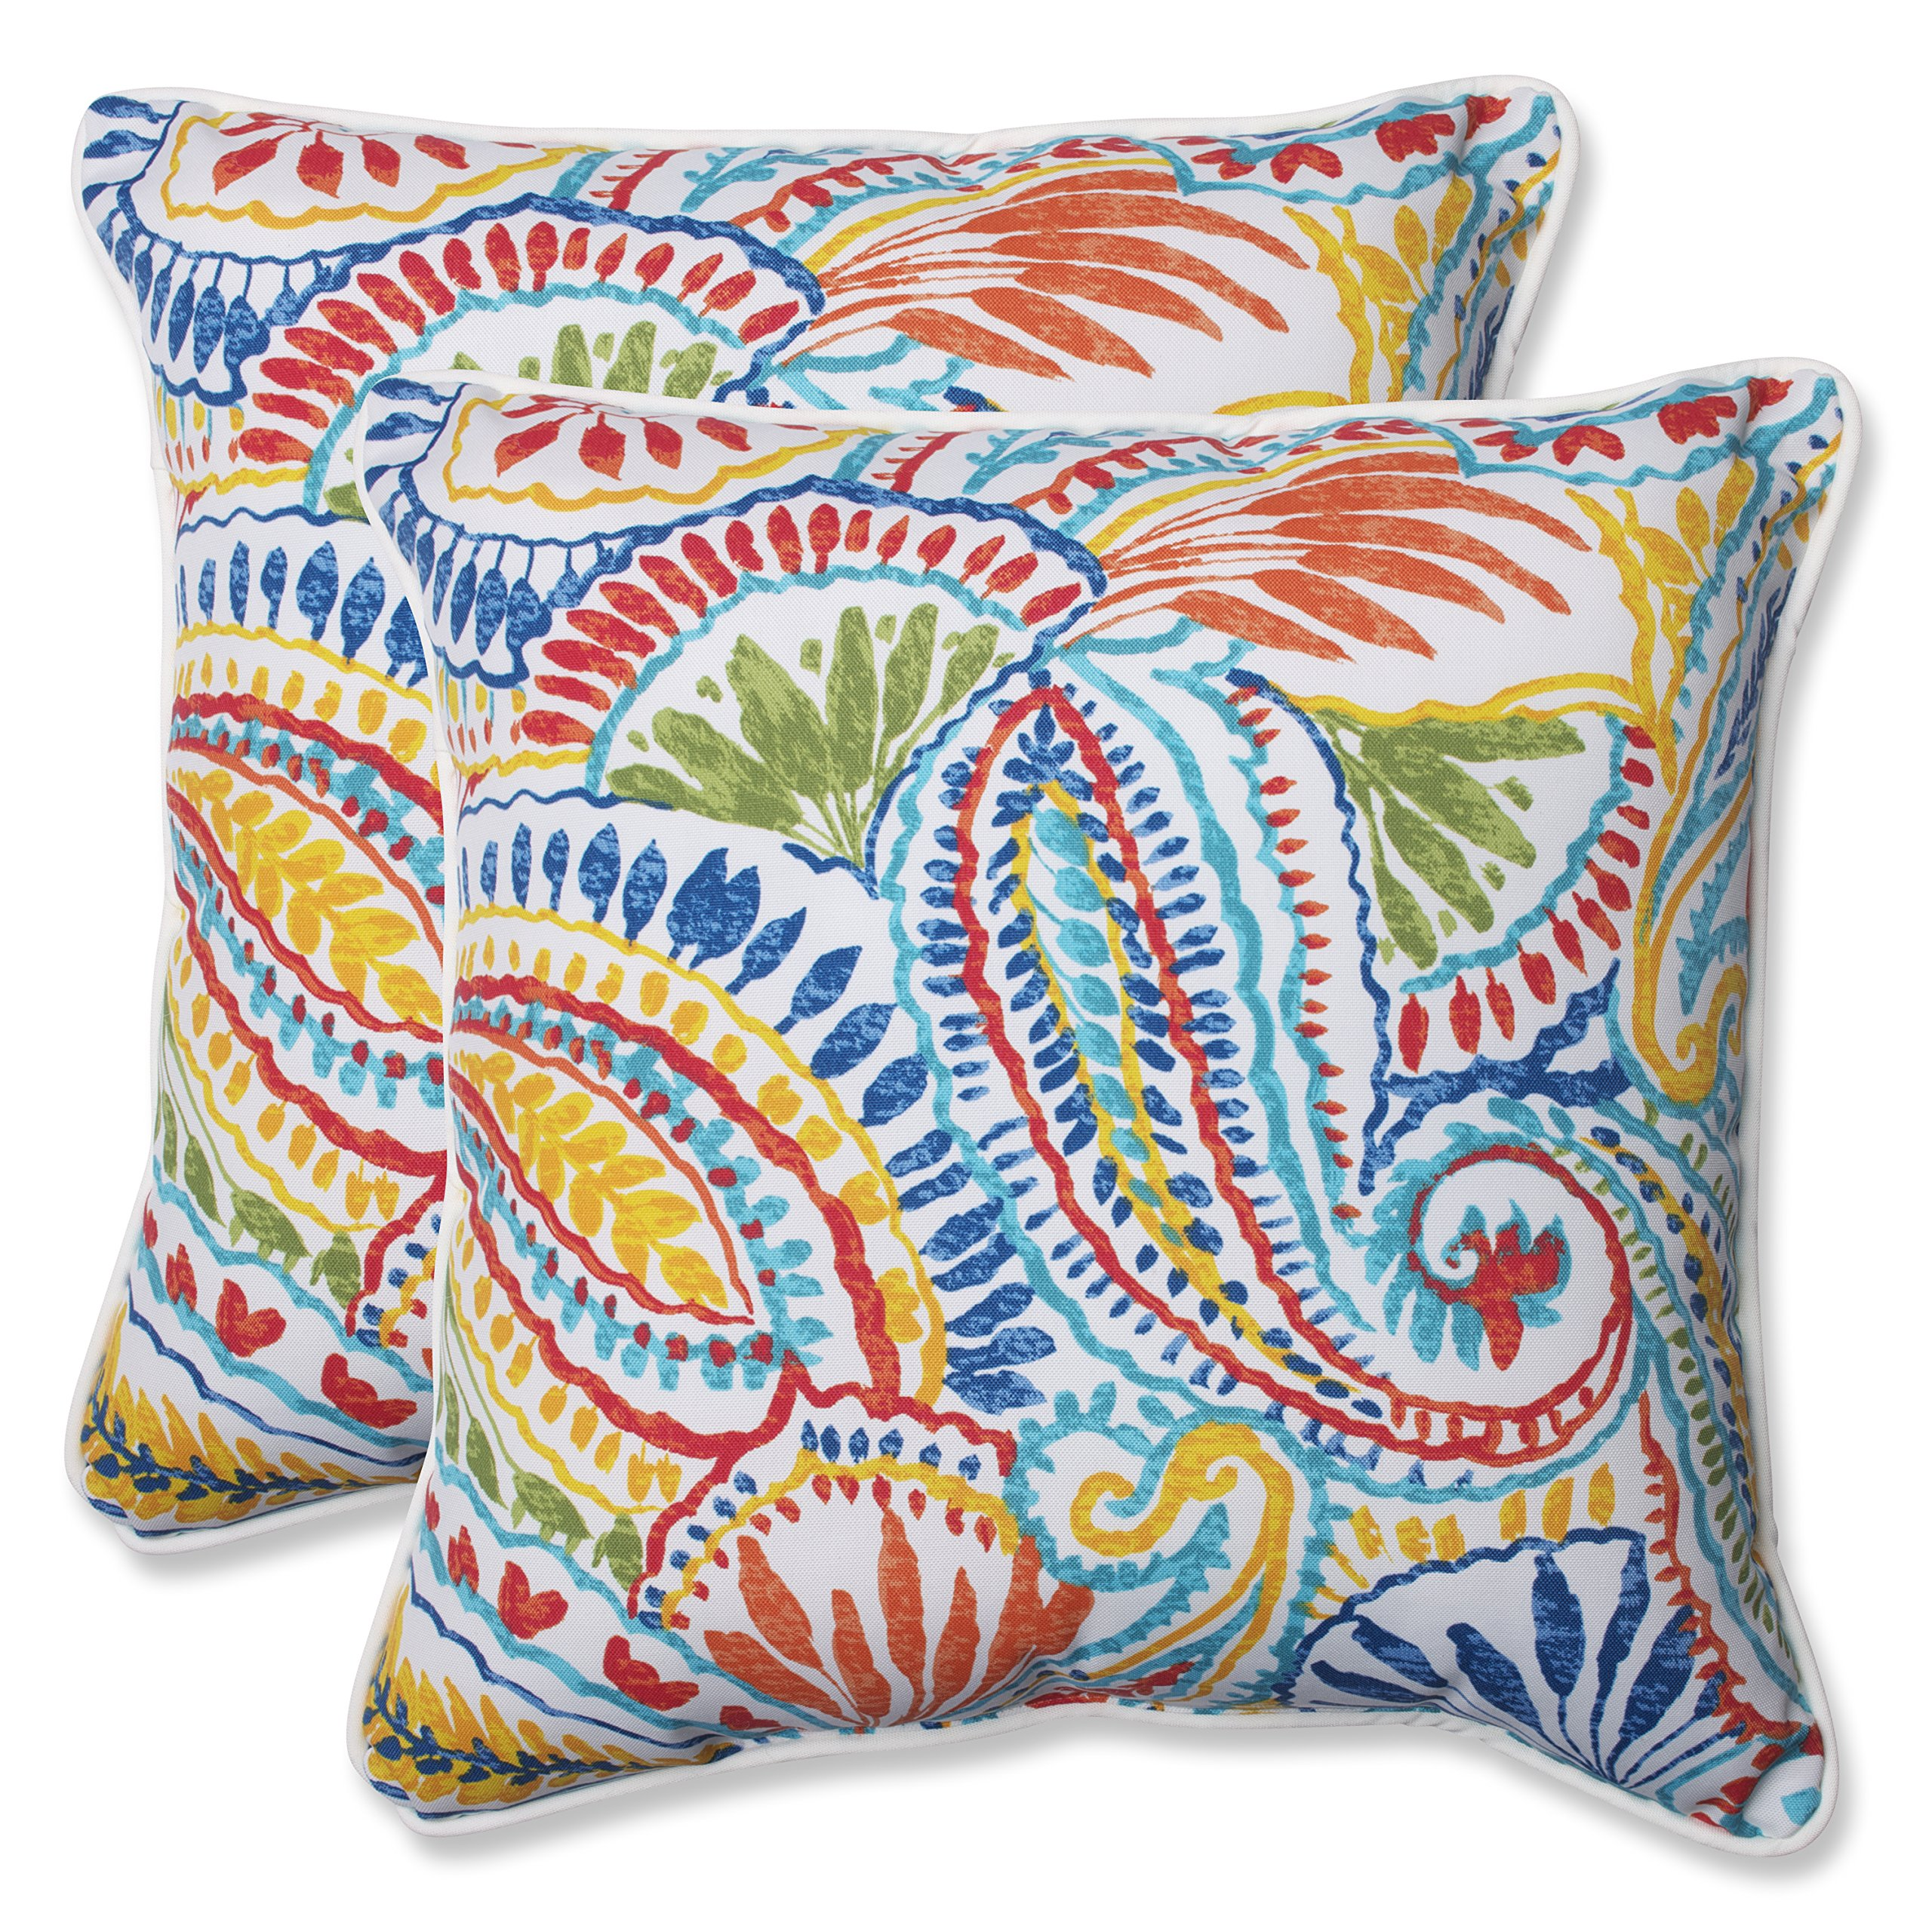 Pillow Perfect 572598 Outdoor Ummi Throw Pillow, Set of 2, 18.5'', Multicolored